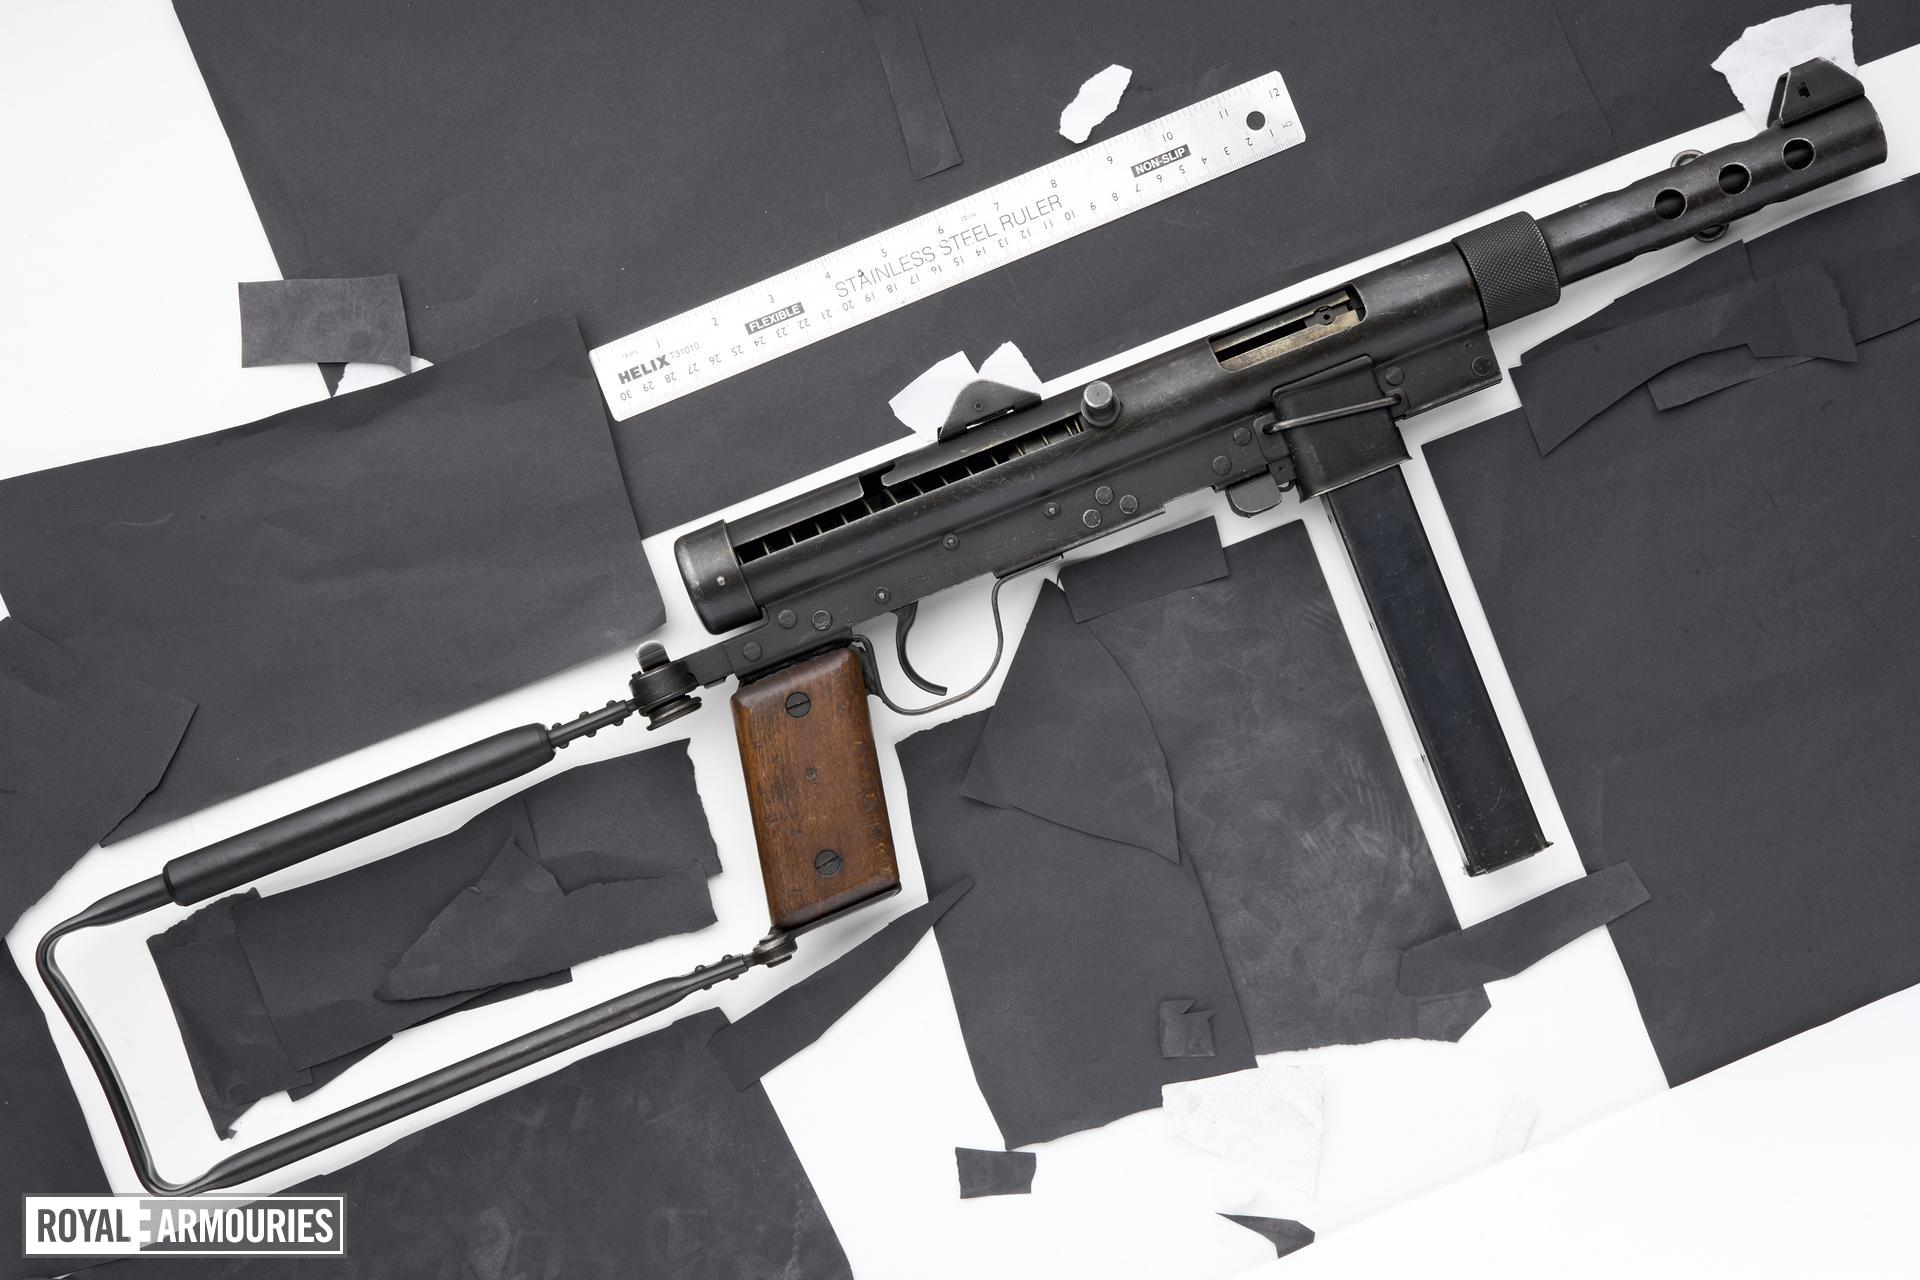 Centrefire automatic submachine gun - Port Said (Akaba)